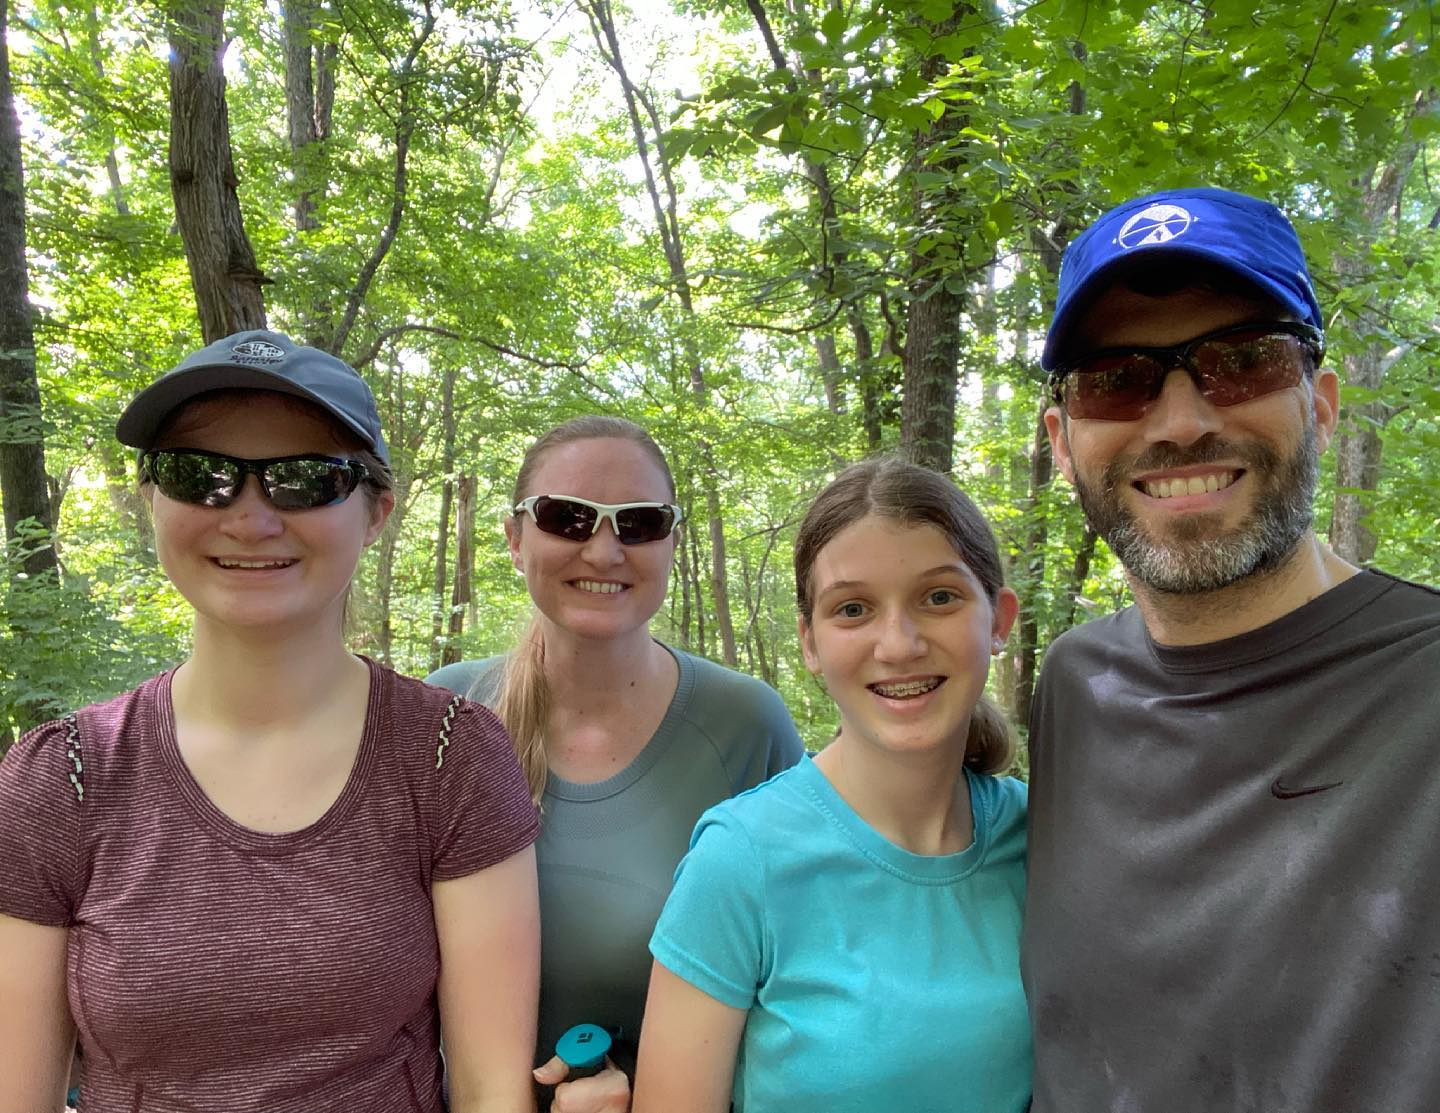 Fun Memorial Day hike on the Red Trail in Percy Warner Park. #family #hiking